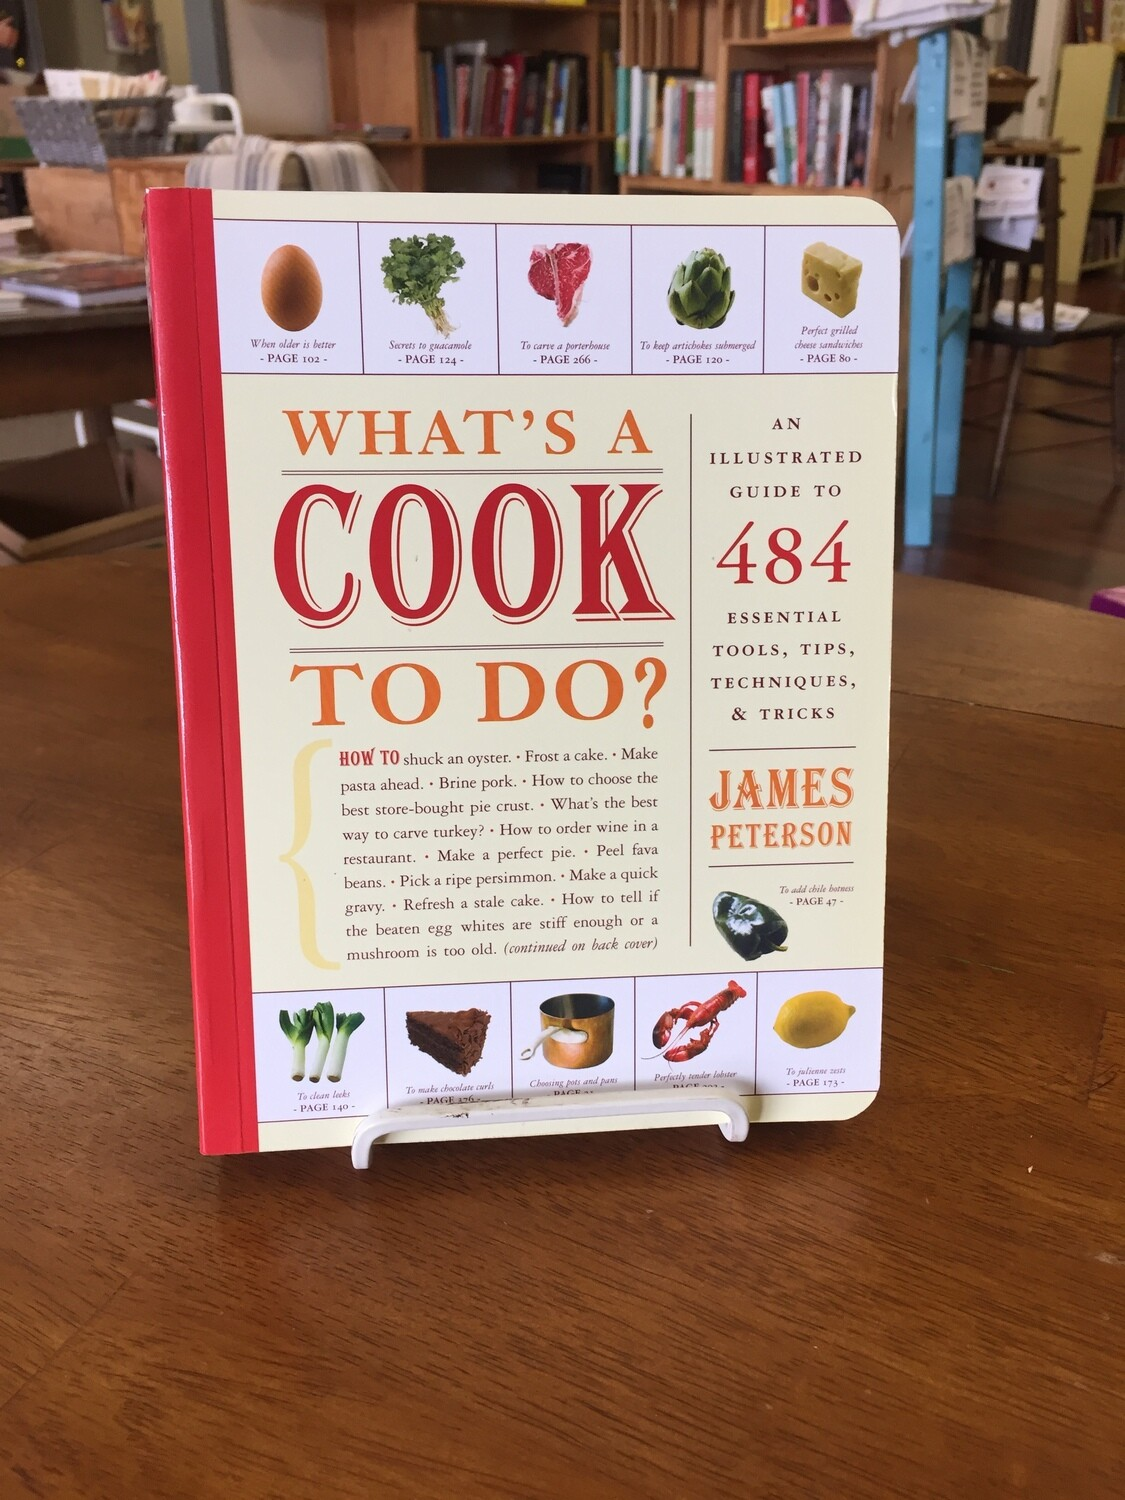 What's a Cook to do?